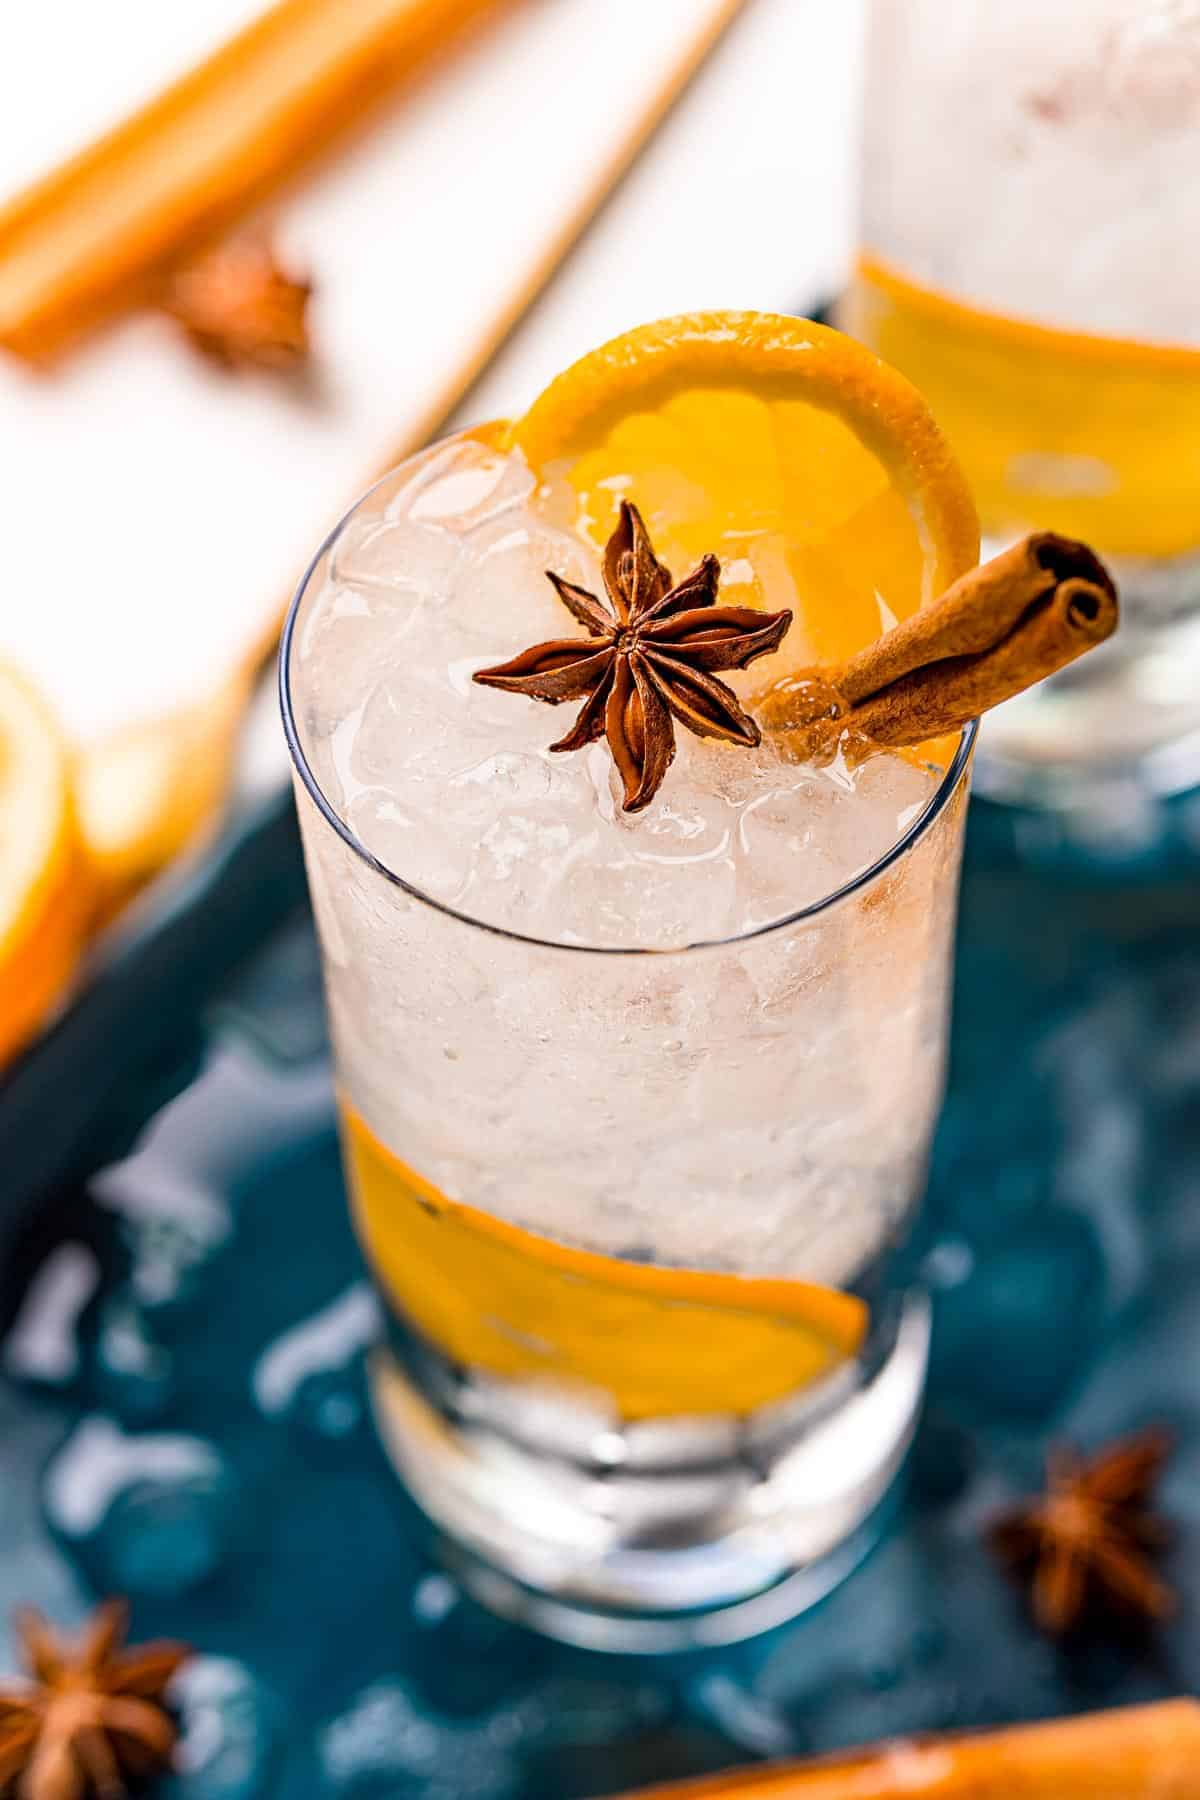 Overhead view of a fall inspired cocktail made with orange, gin, tonic, cinnamon, star anise.